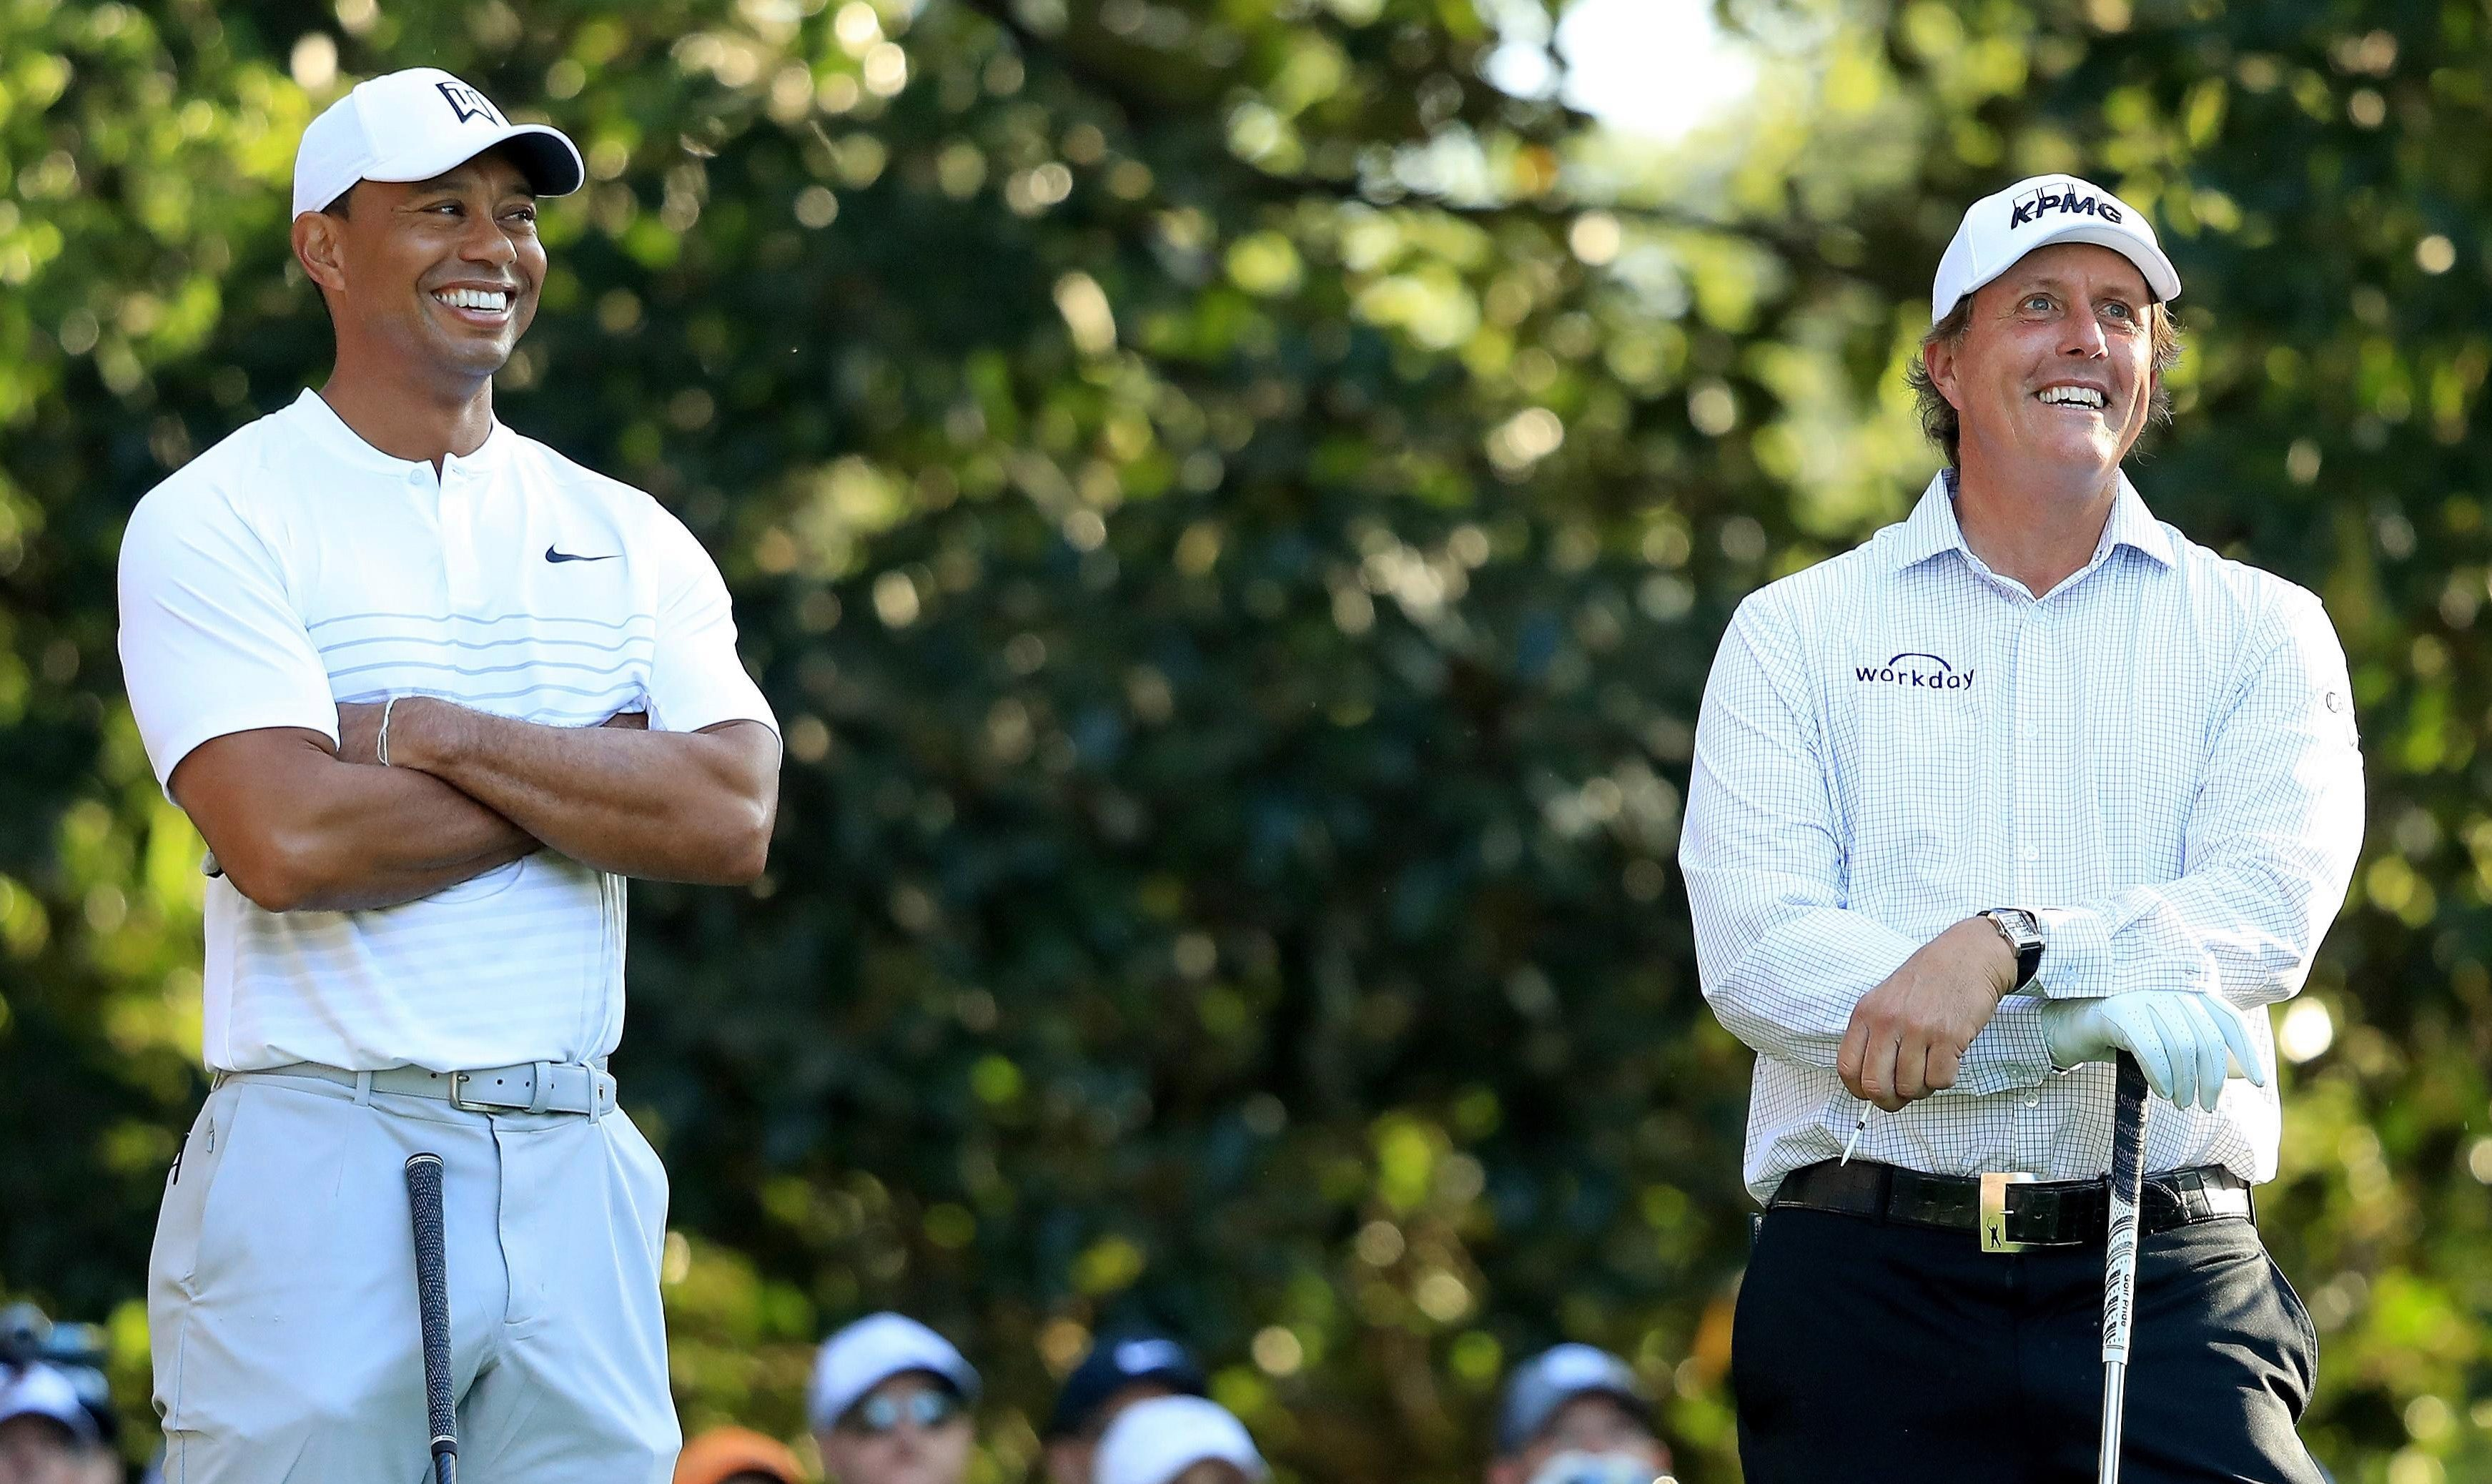 Tiger Woods and Phil Mickelson's frosty relationship has thawed in recent years